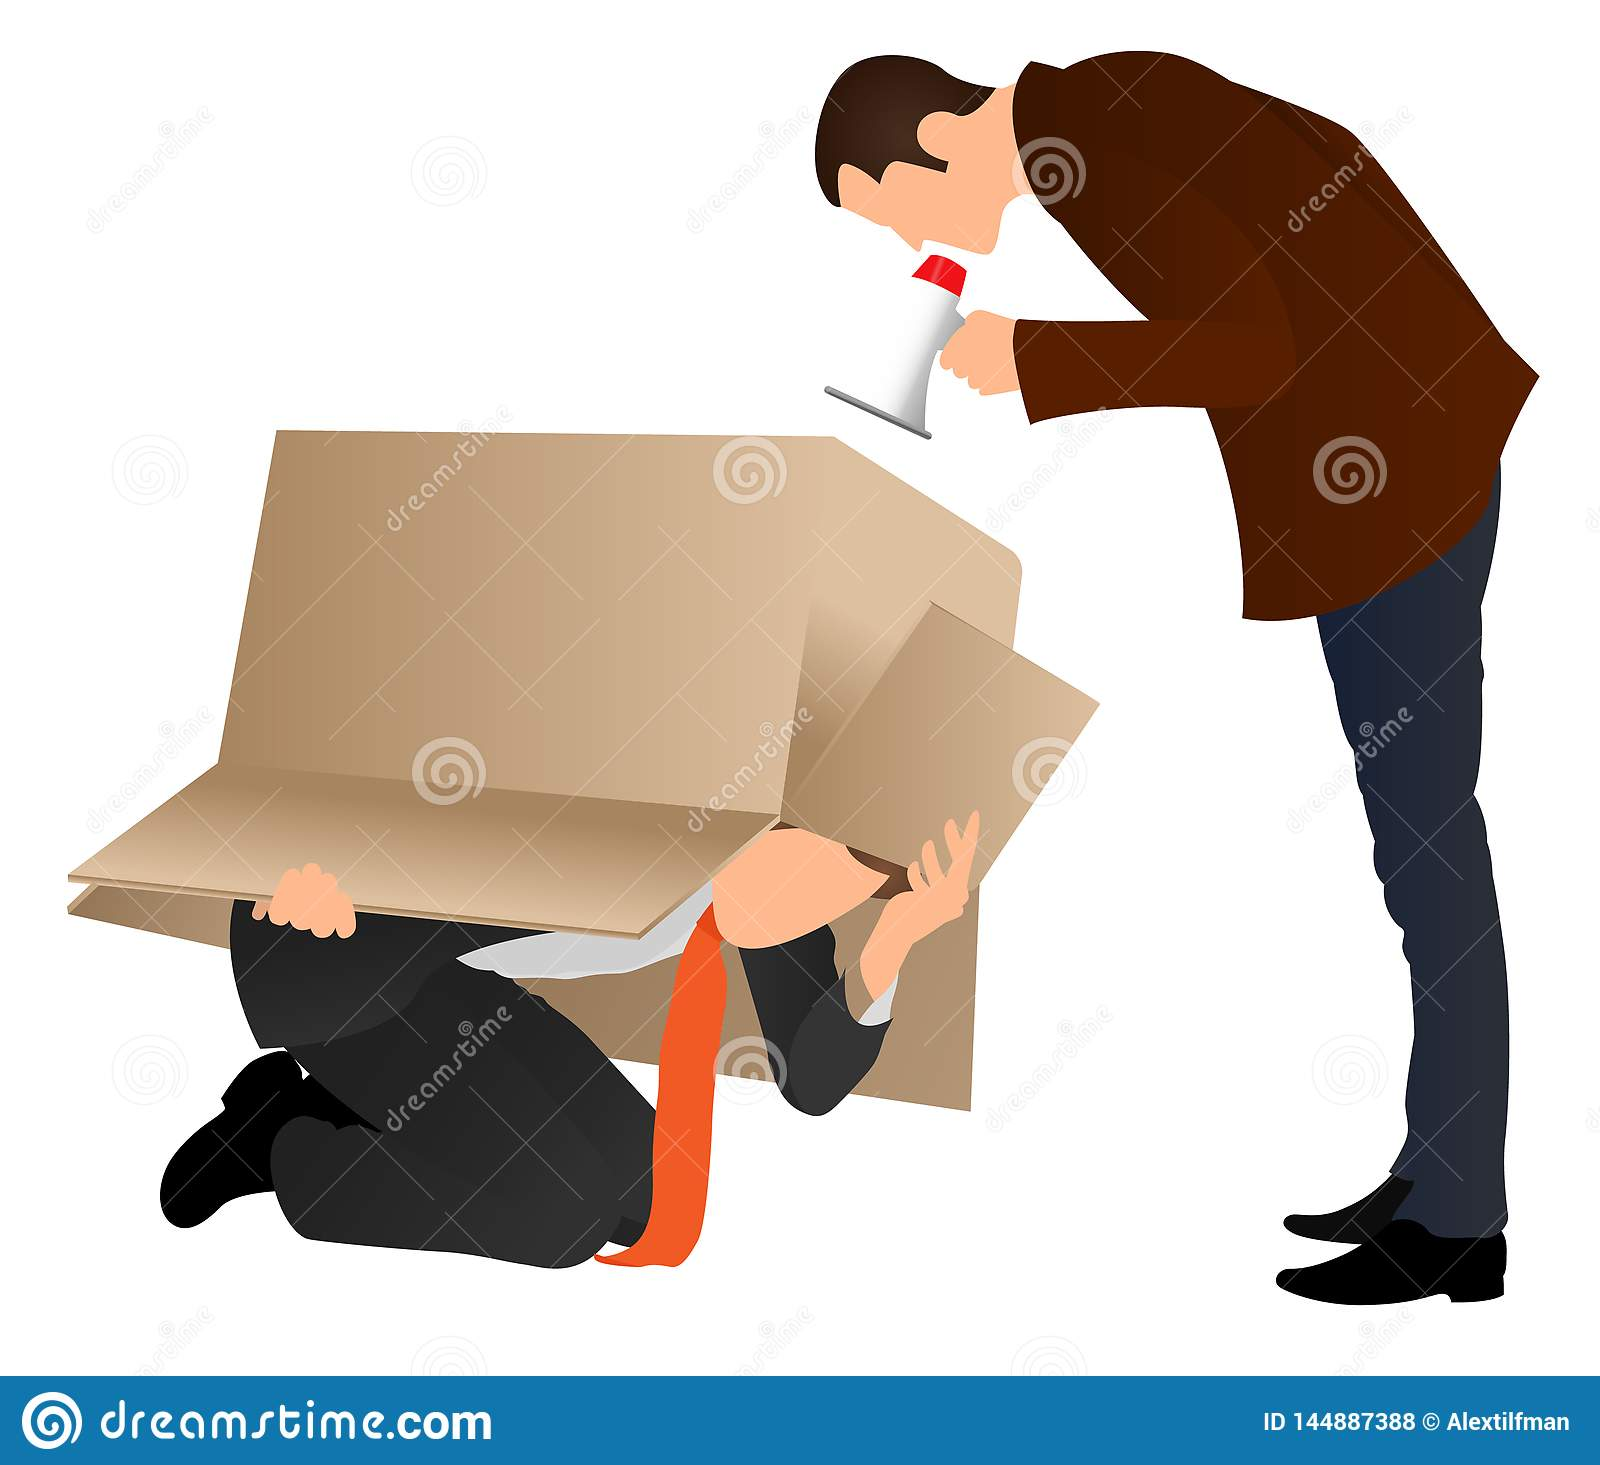 Problems at work. Businessman hiding under cardboard box. Boss screaming with a megaphone. Business concept. Angry boss yelling at